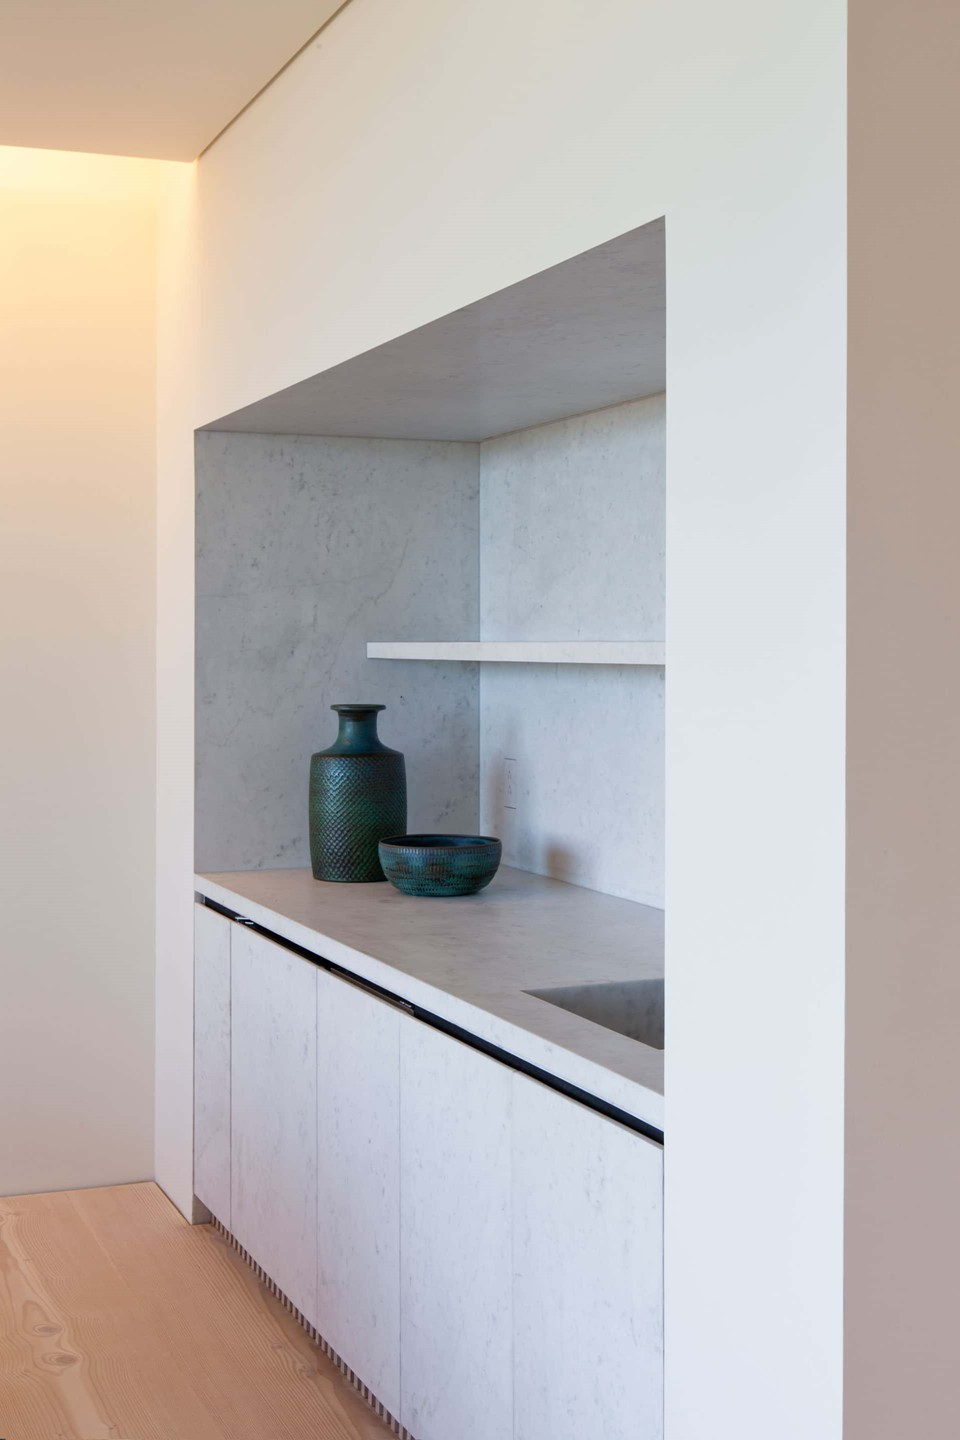 douglas-flooring_lye-and-white-soap_central-park-office_dinesen.jpg